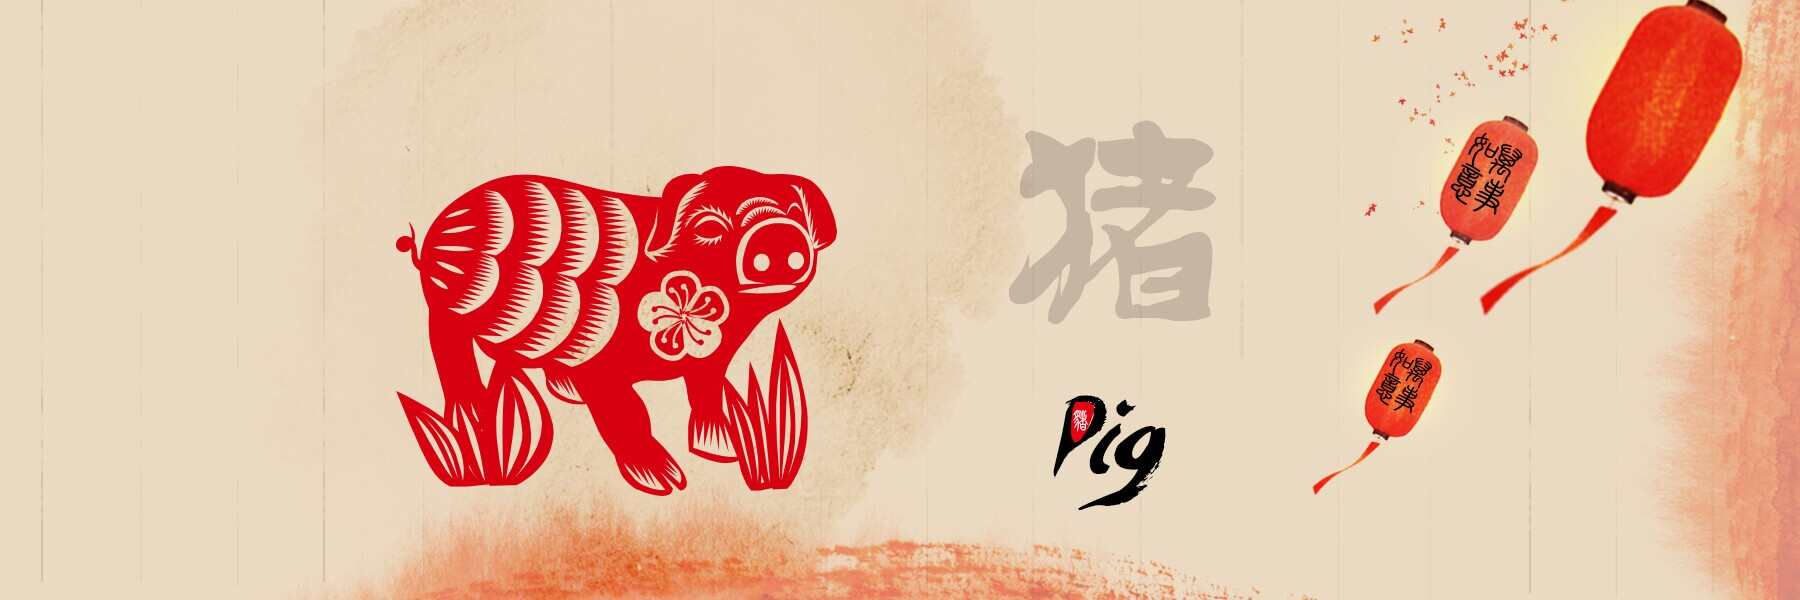 2019 the Pig Year - Fortune for People Whose Zodiac Animal is Pig